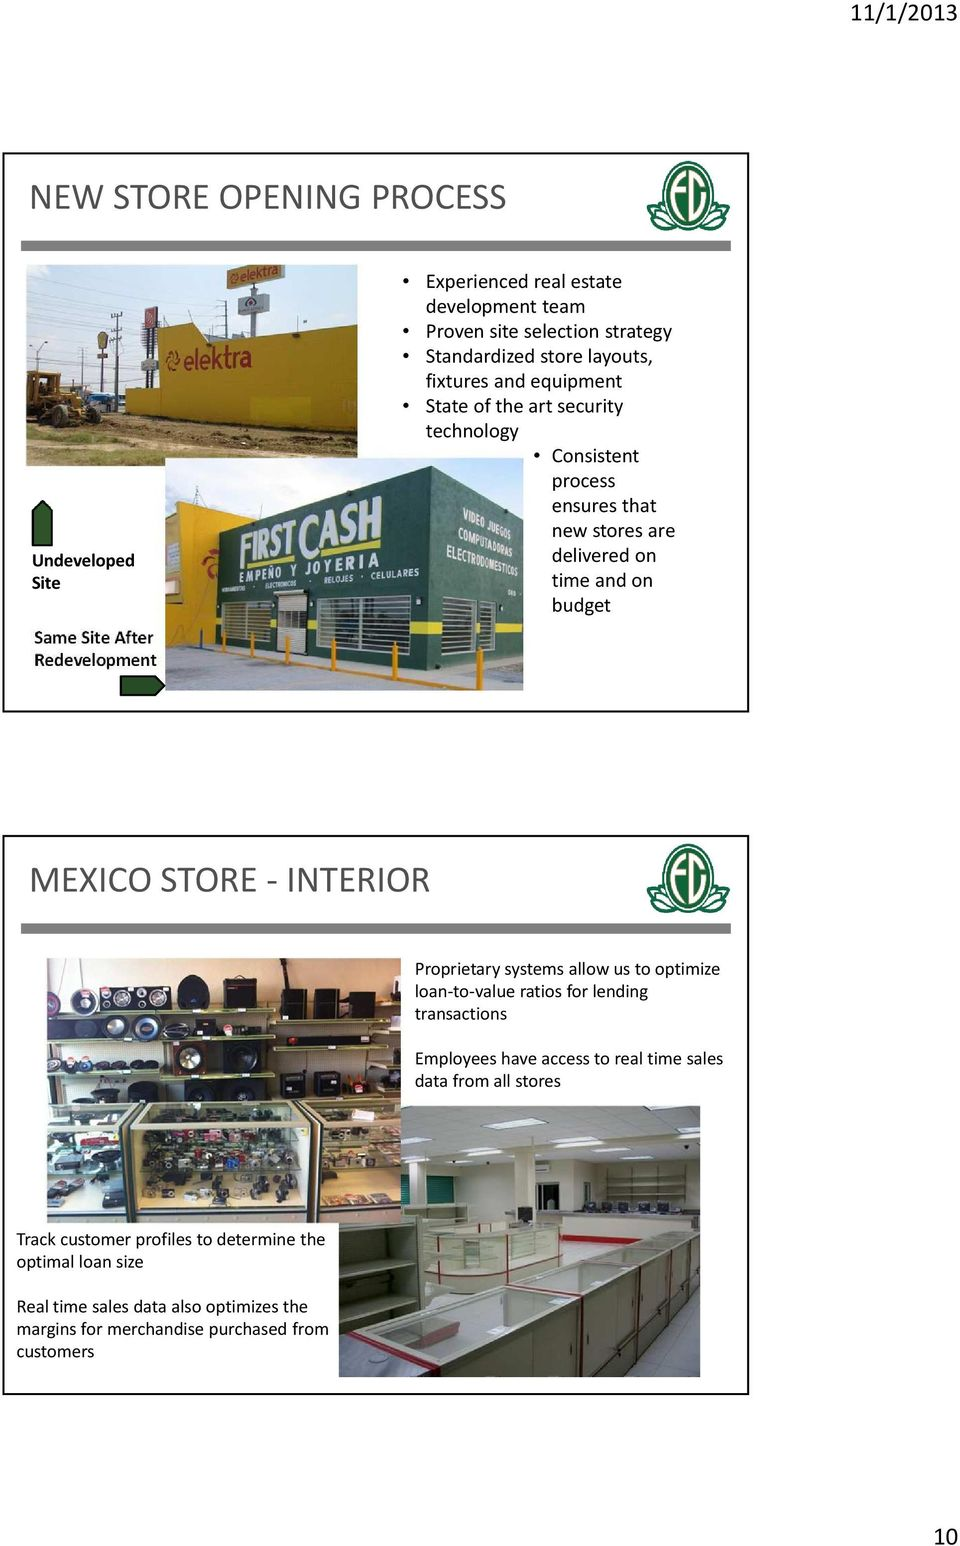 MEXICO STORE - INTERIOR Proprietary systems allow us to optimize loan-to-value ratios for lending transactions Employees have access to real time sales data